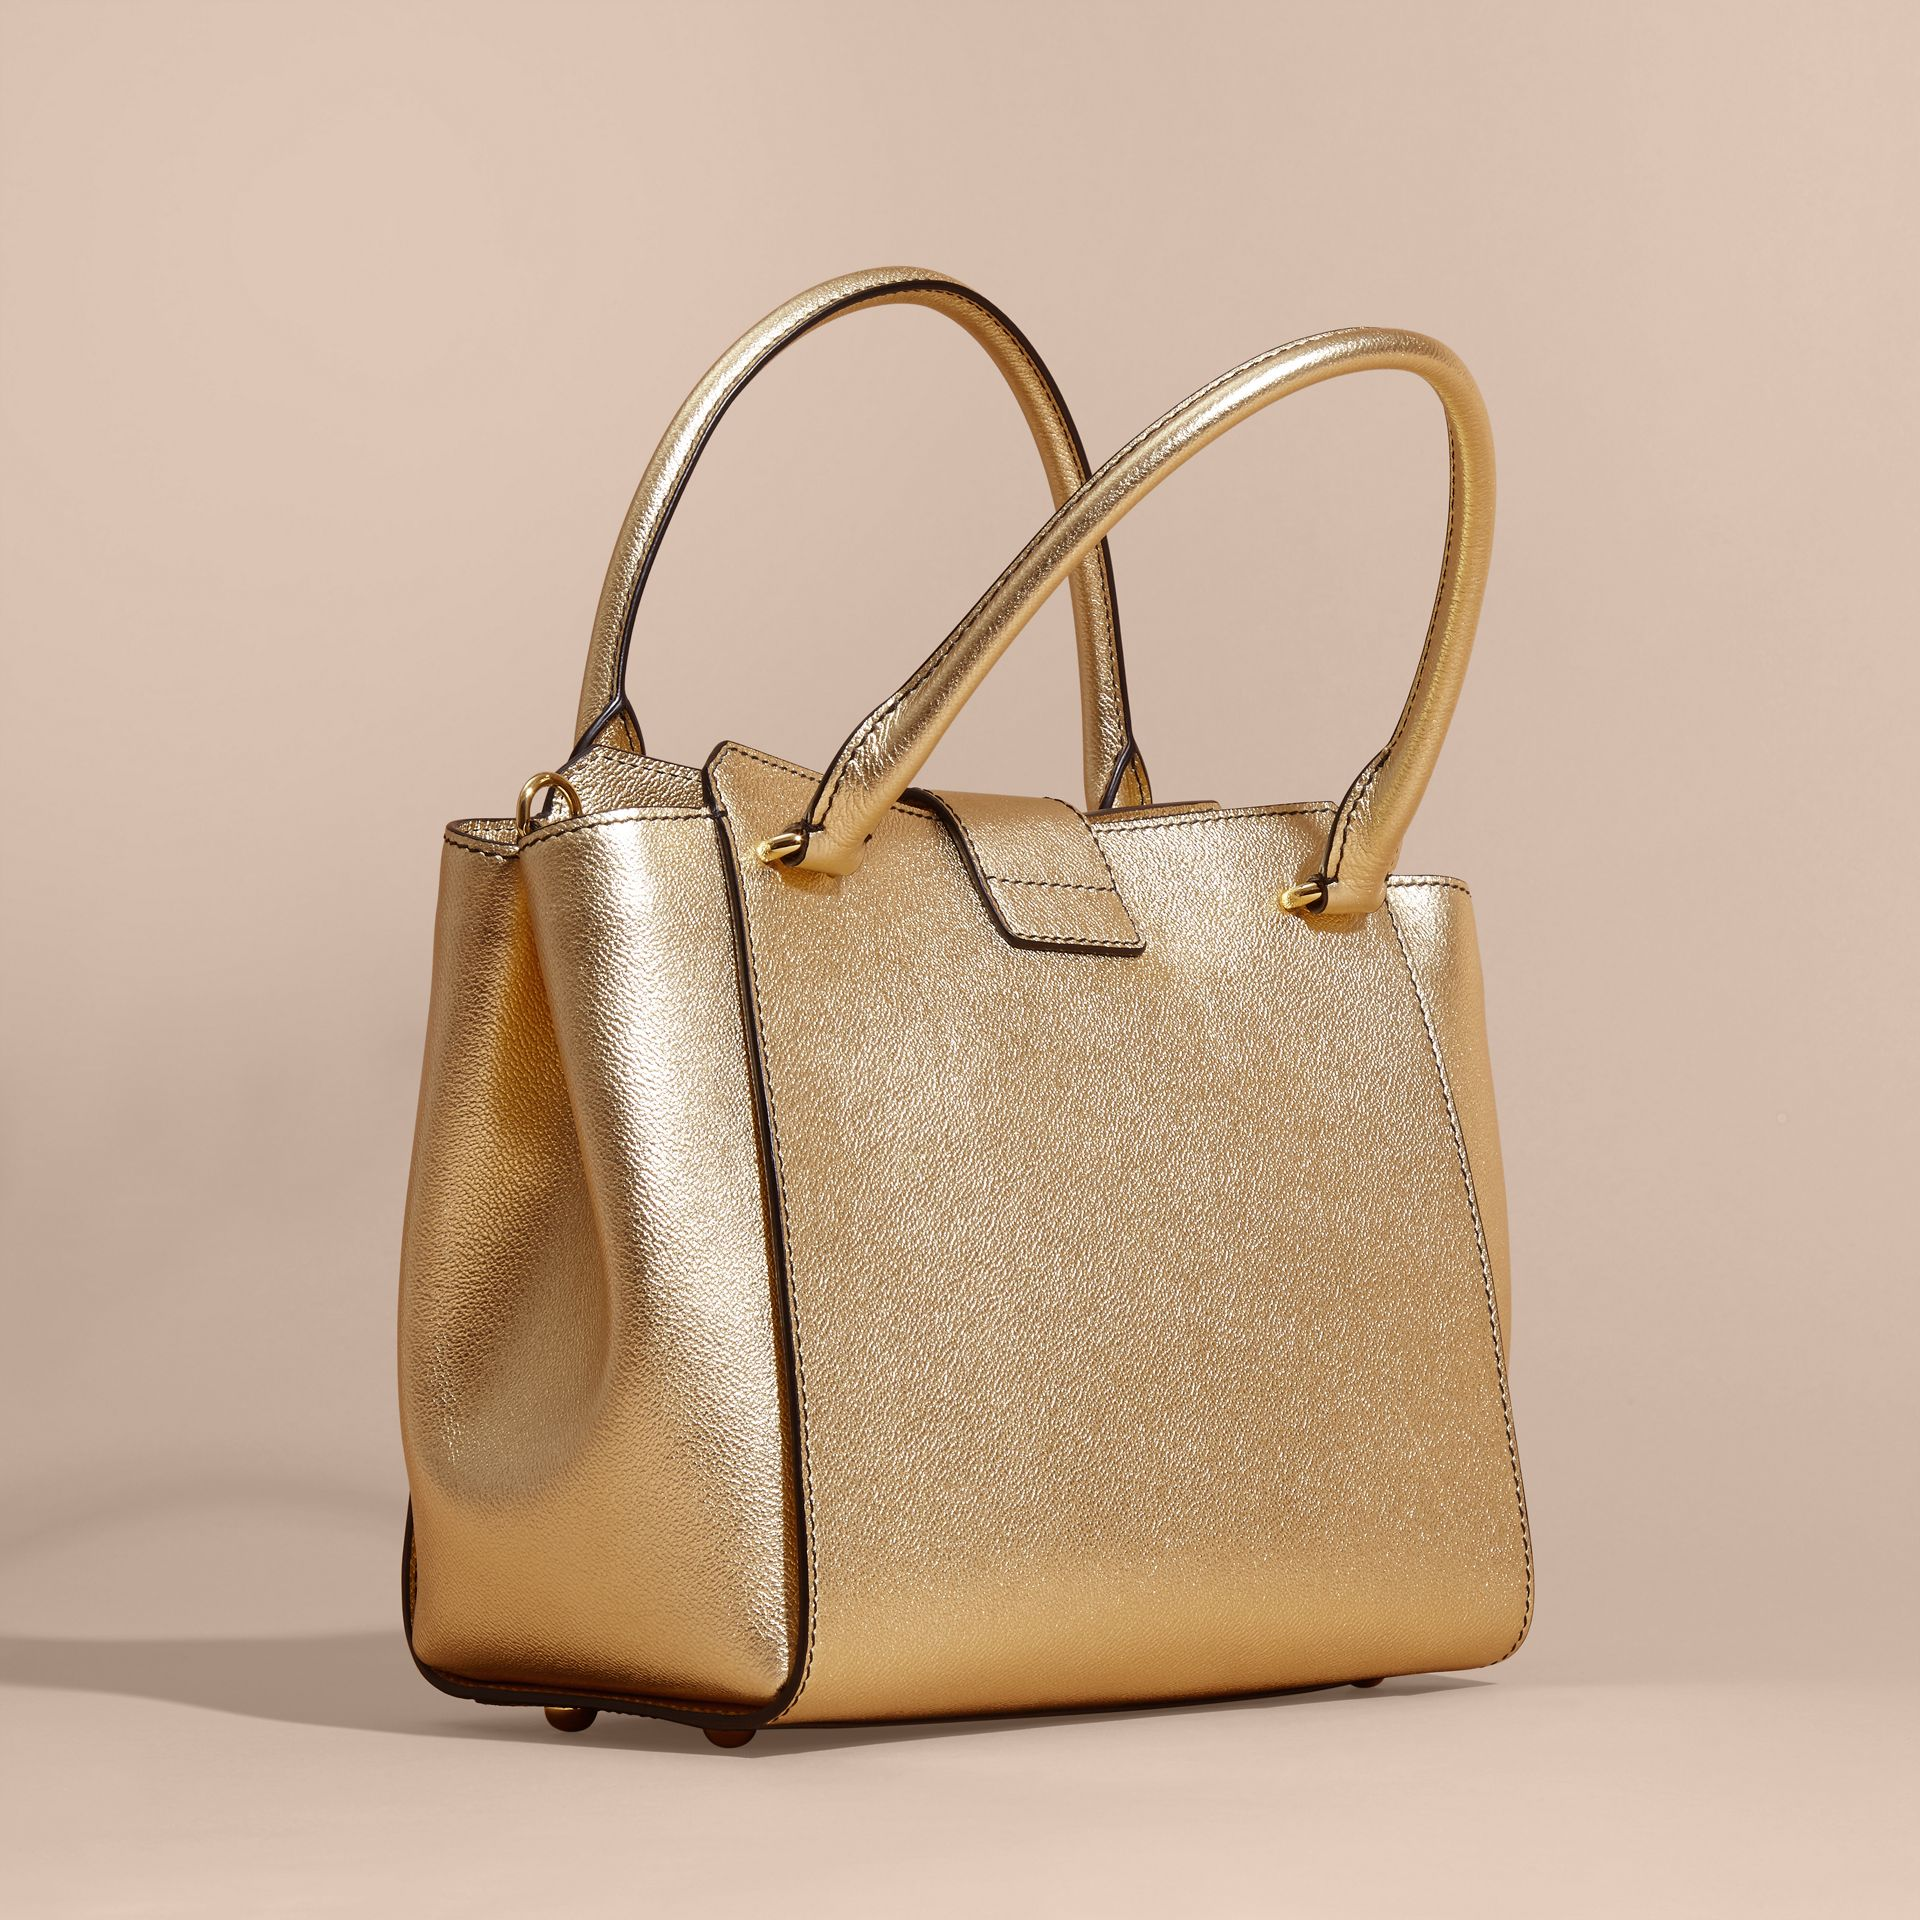 Gold The Medium Buckle Tote in Metallic Leather - gallery image 5